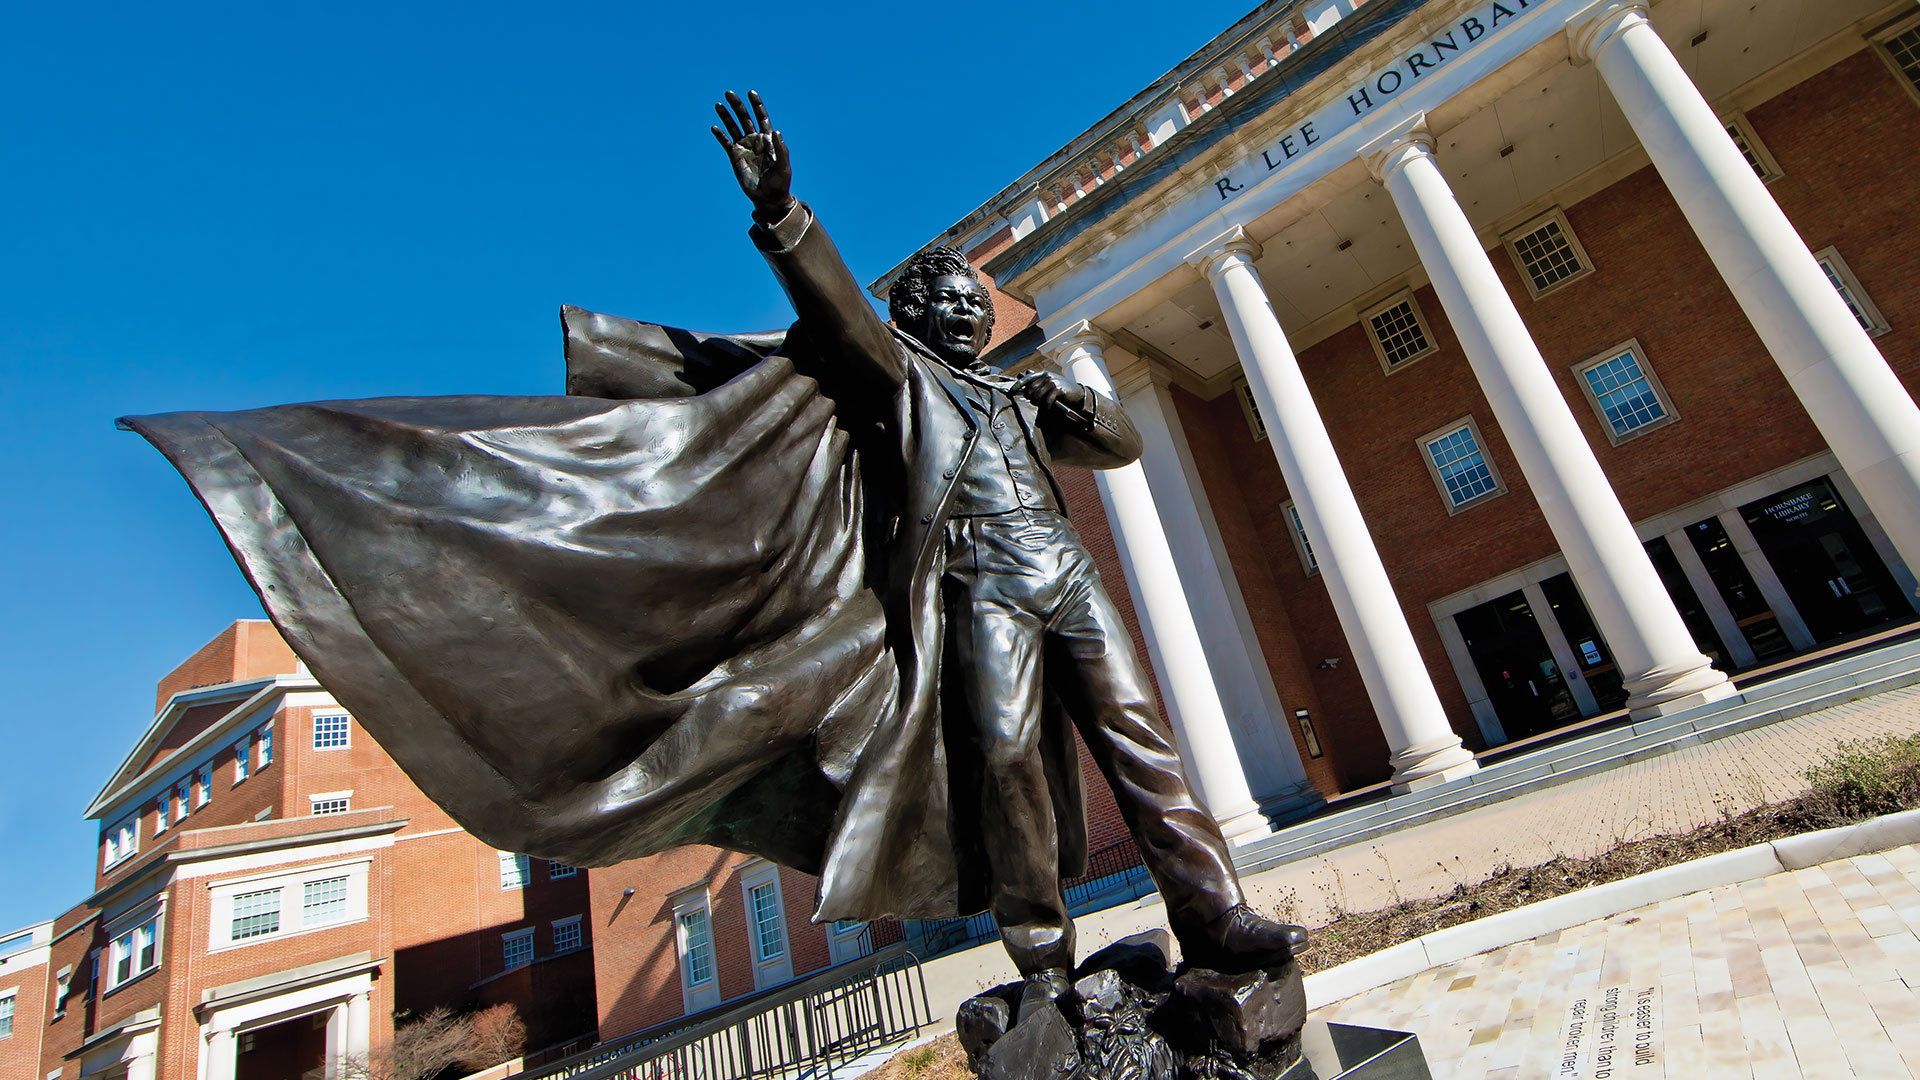 UMD Commemorates Frederick Douglass' 200th Birthday Through Year-Long Initiative